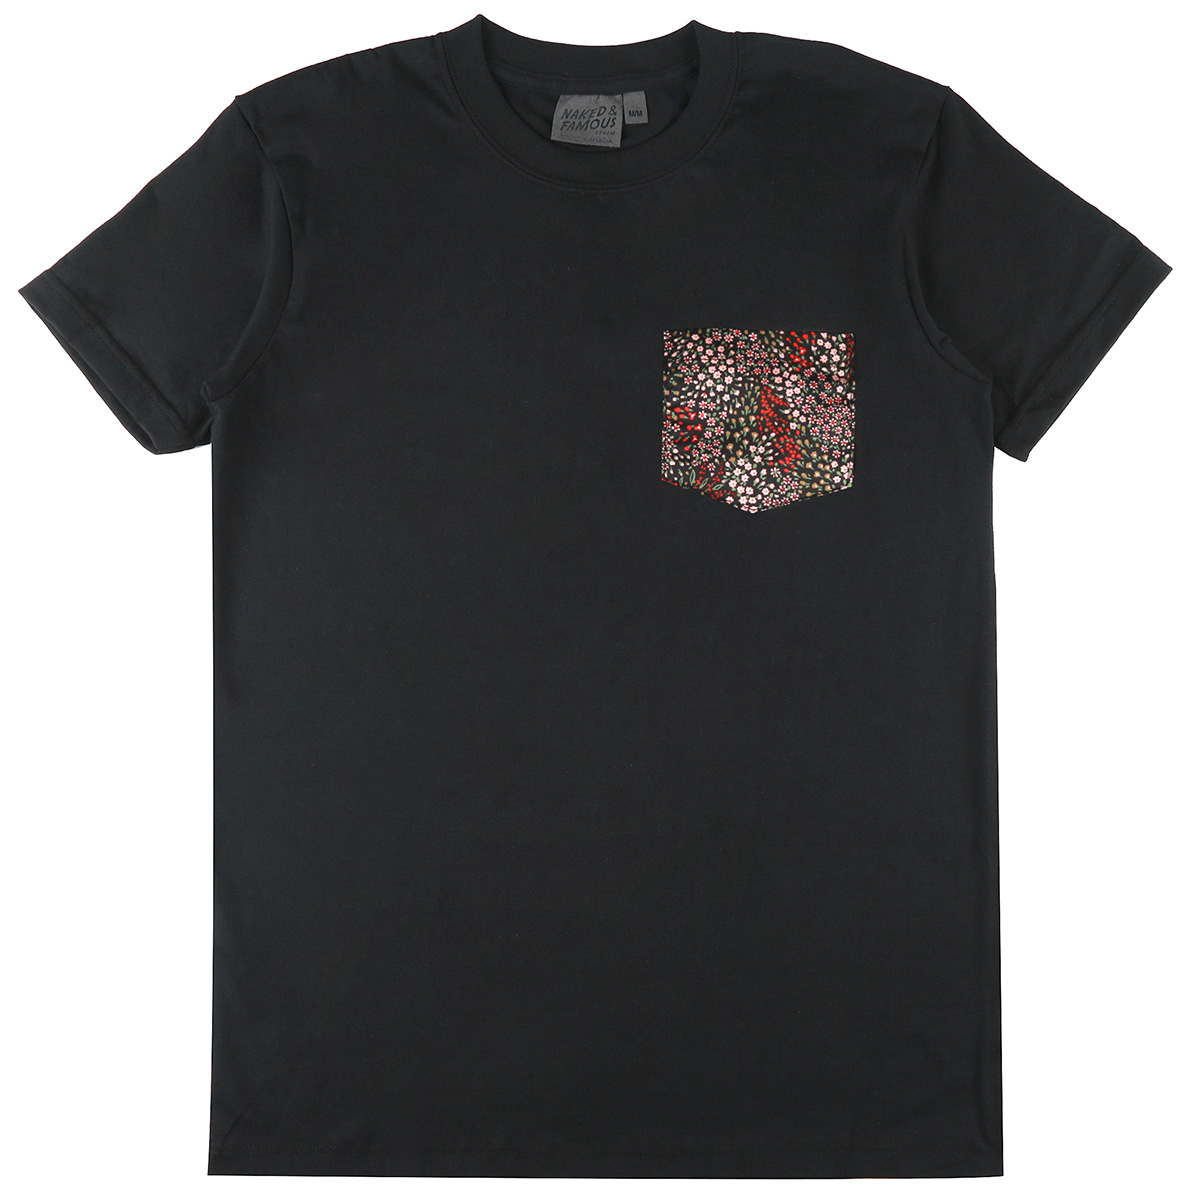 BLACK + ALLOVER FLOWERS - Pocket Tee